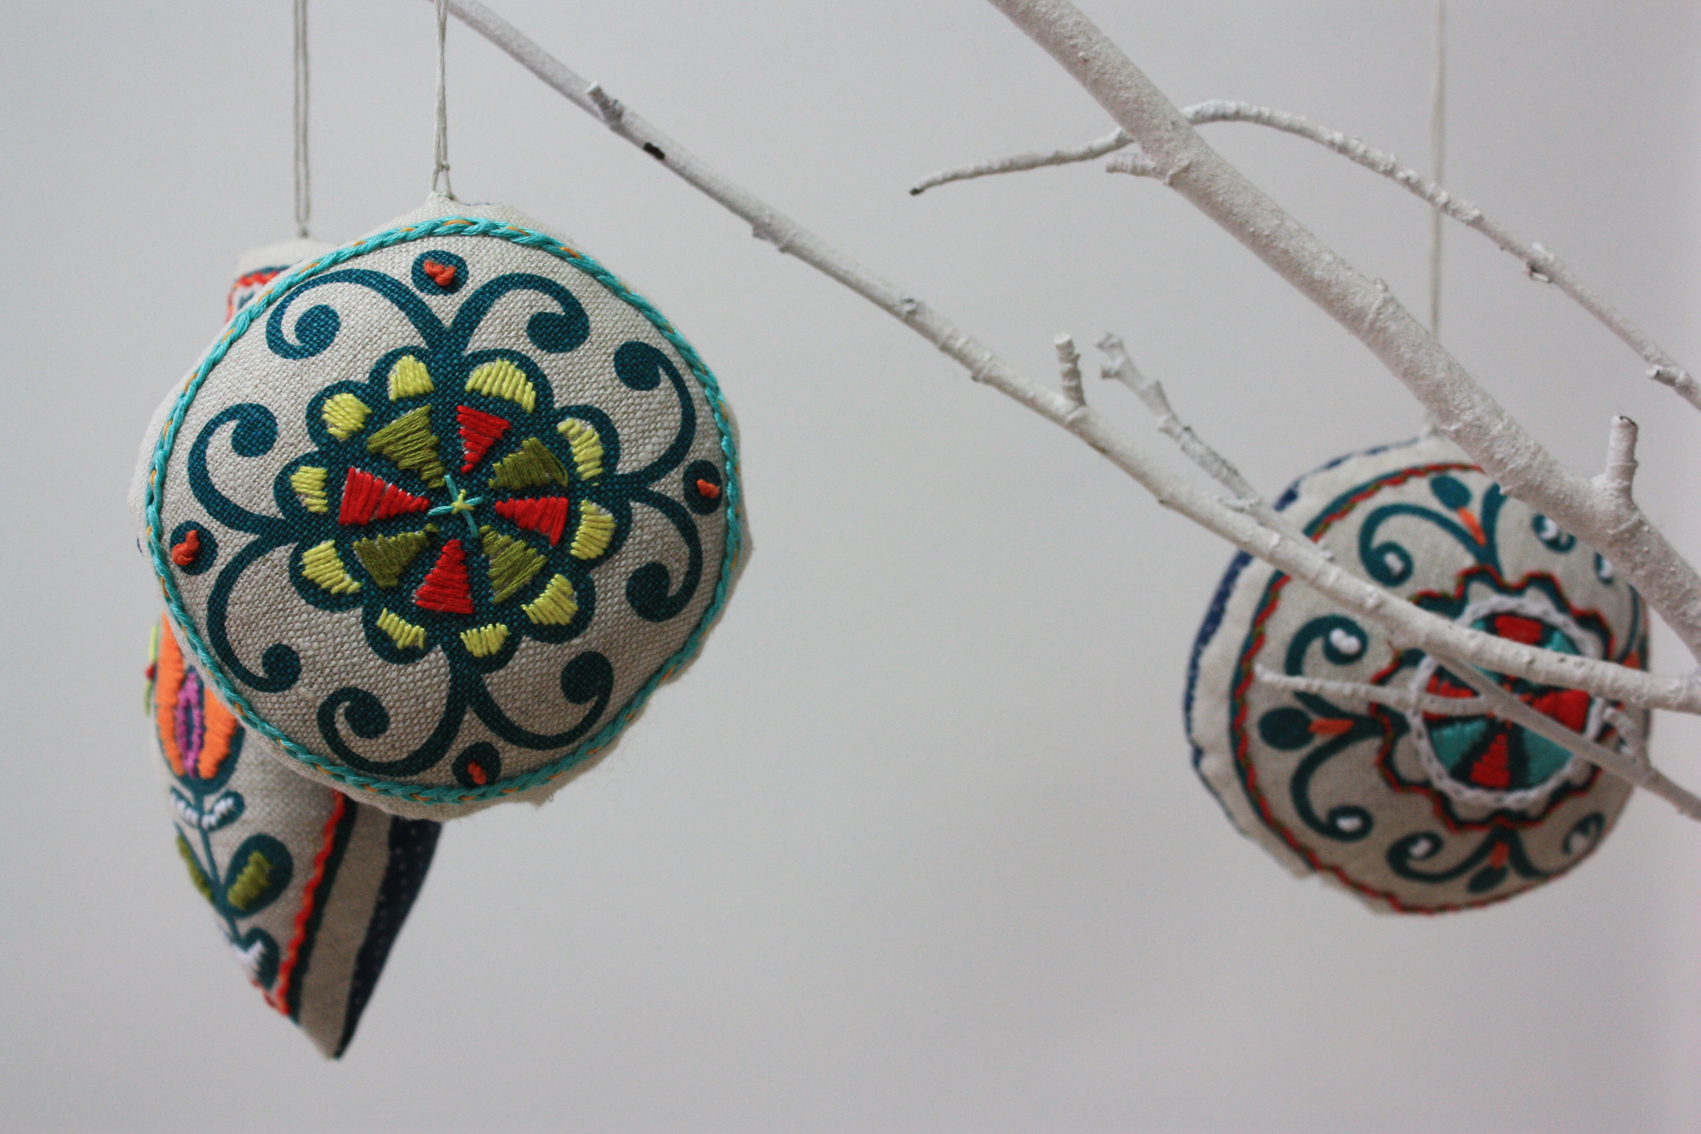 Embroidered christmas ornaments - Embroidered Christmas Decorations From Prints Charming